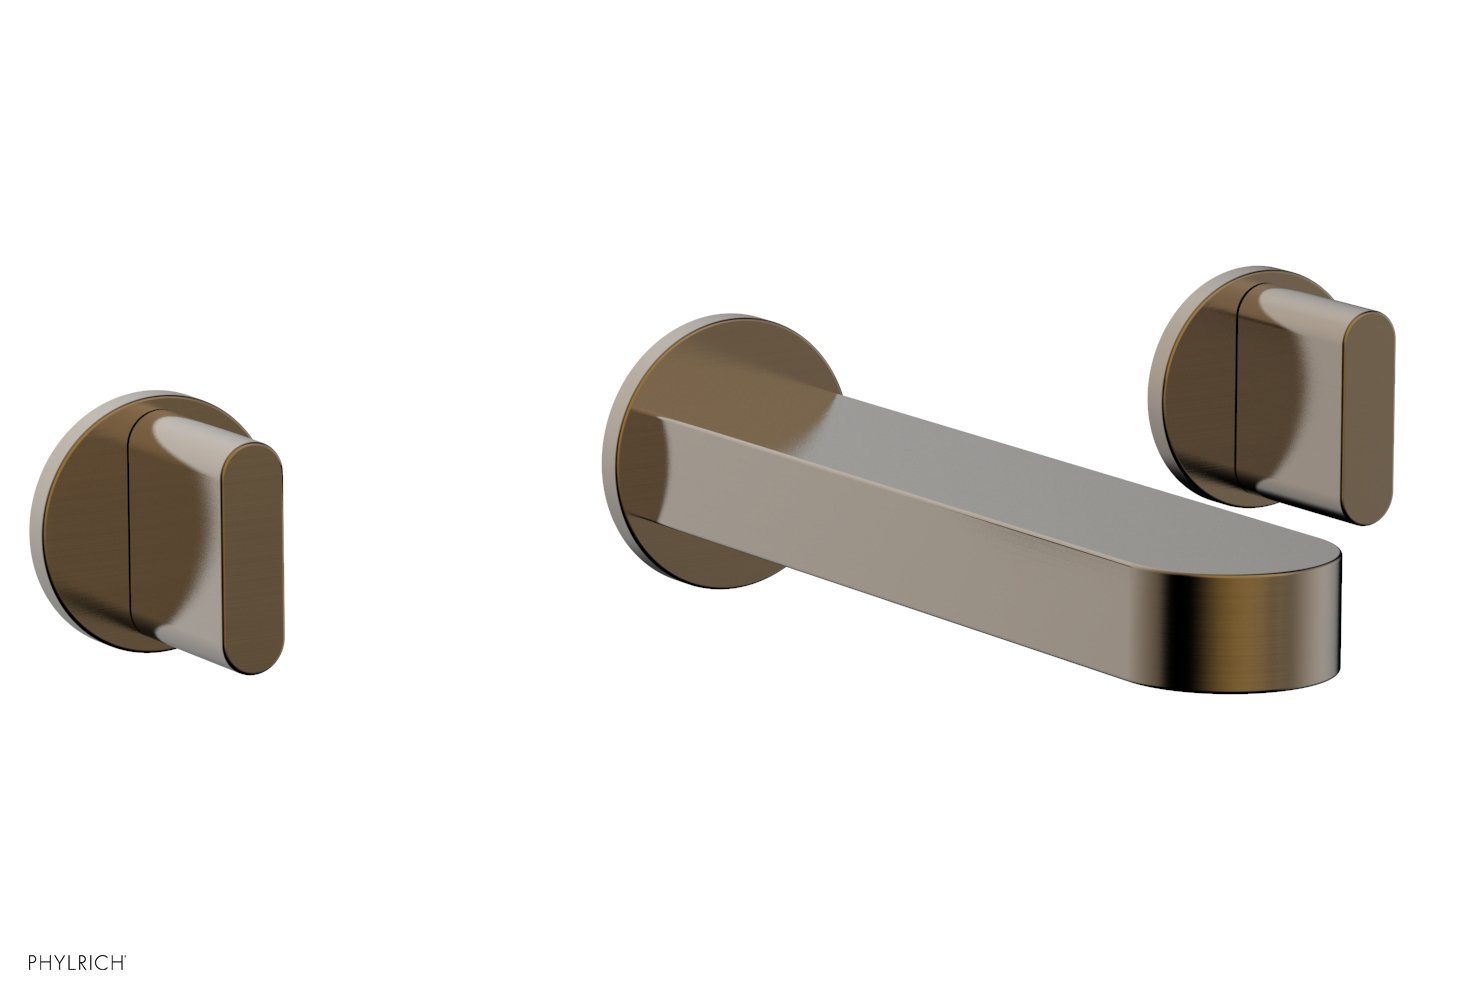 Phylrich 183-11-047 ROND Wall Lavatory Set - Blade Handles - Antique Brass